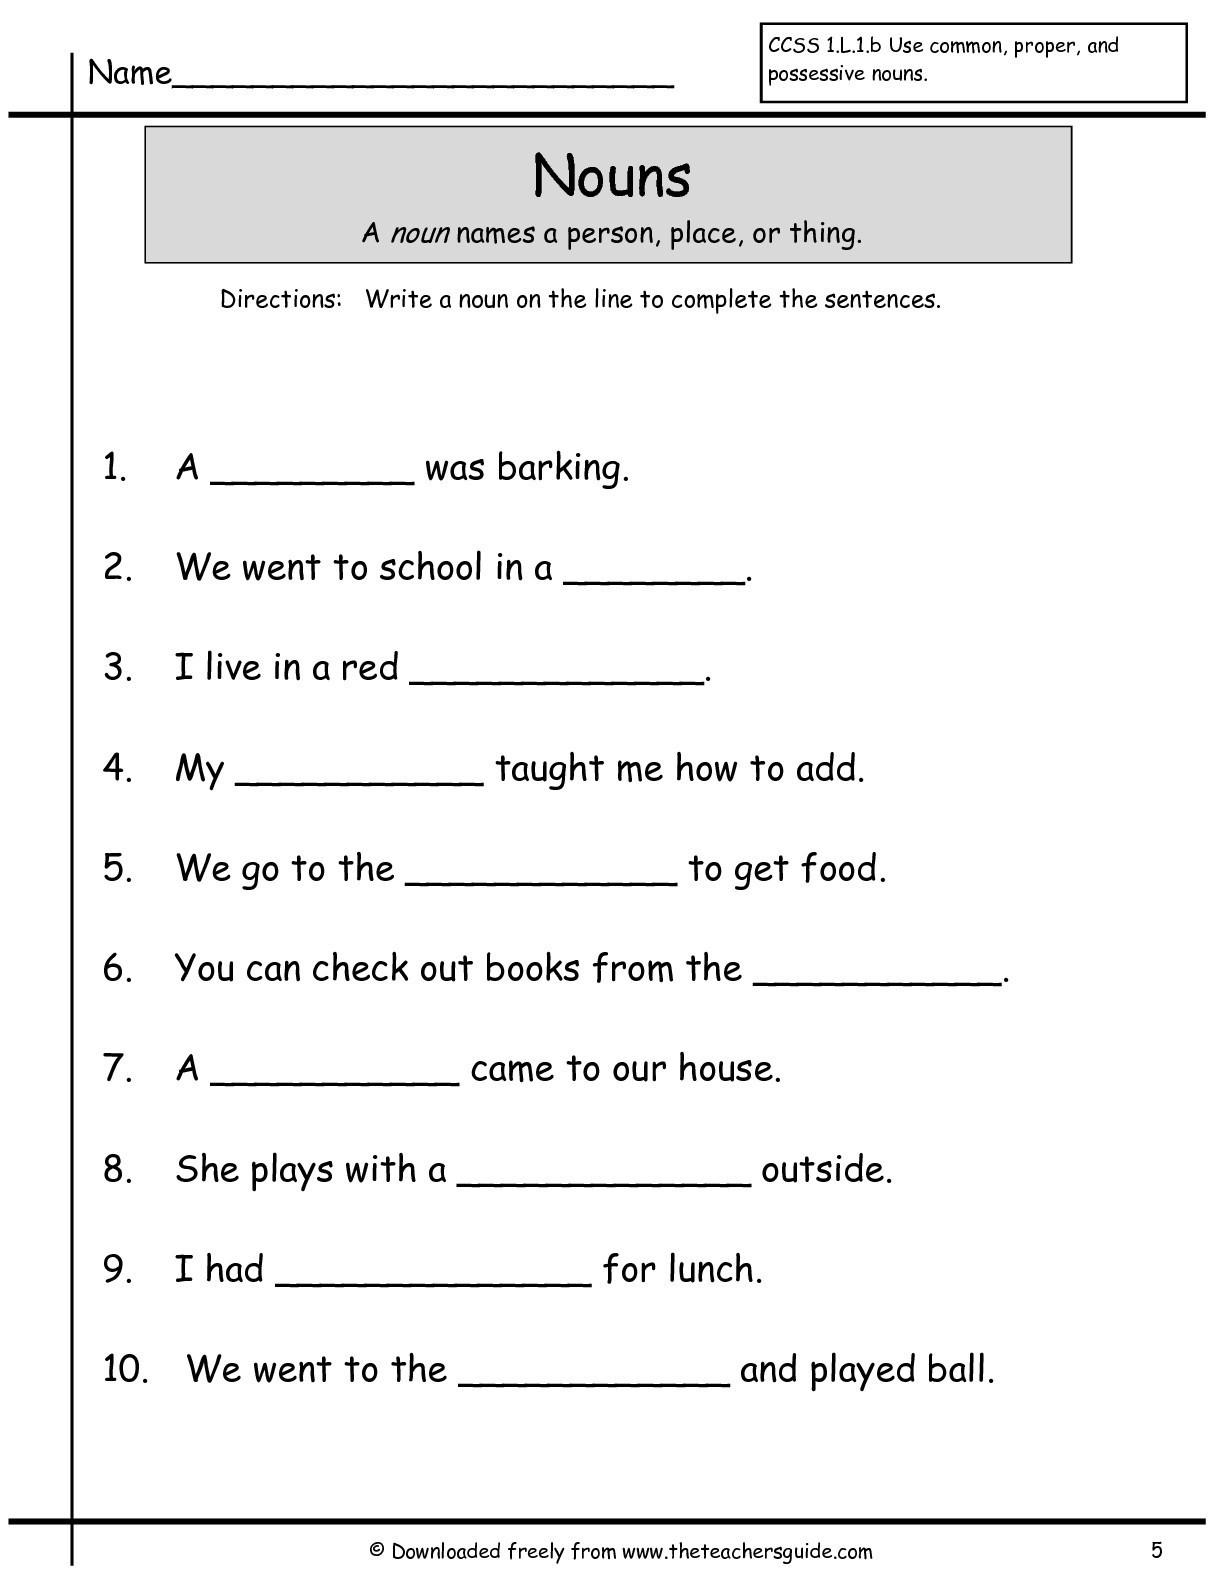 Social Studies Worksheets 7th Grade Globalpublicpolicywatch Page 202 Italian Culture Worksheets